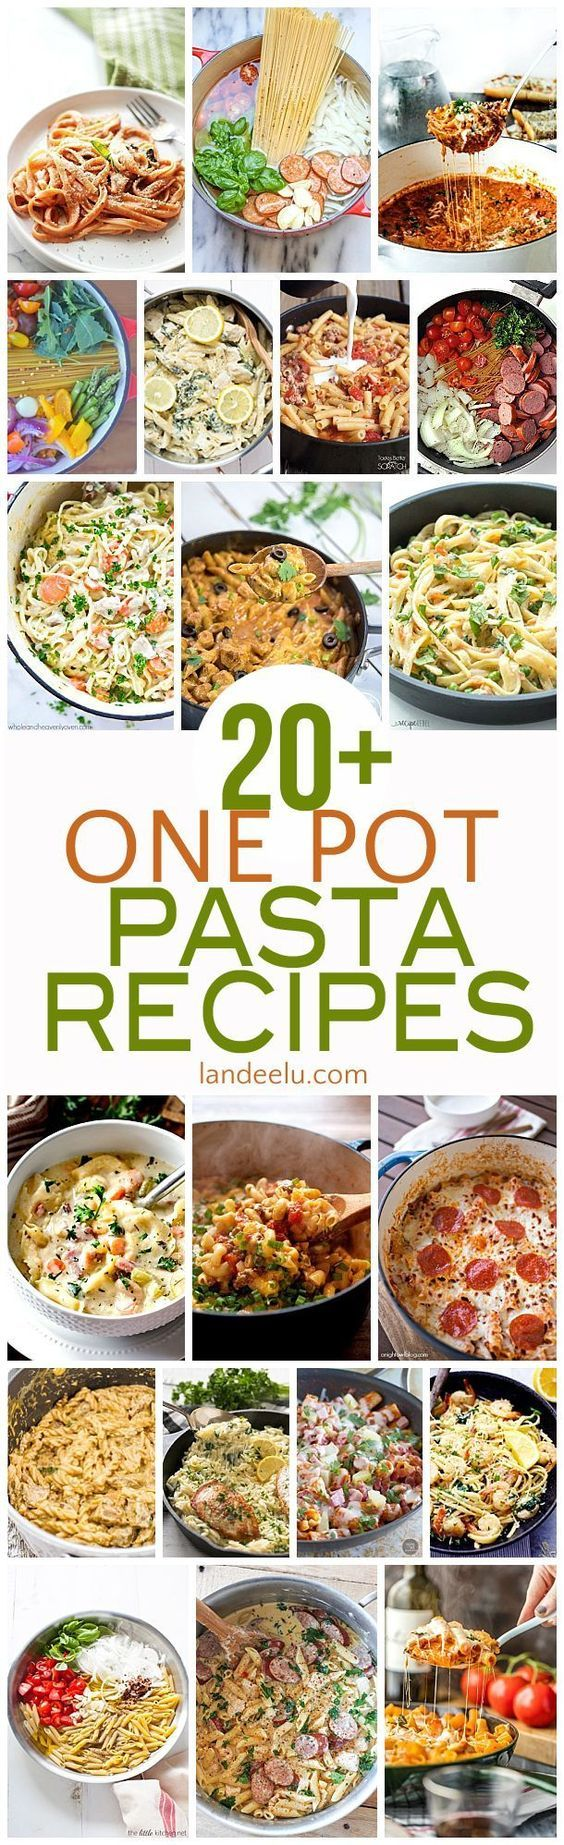 Getting dinner on the table some weeknights seems like an incredibly unattainable goal. Everyone is going in all different directions, including YOU! And dishes? Who wants to do a million dishes after a long busy day? Not. Me. Enter the one pot meal.